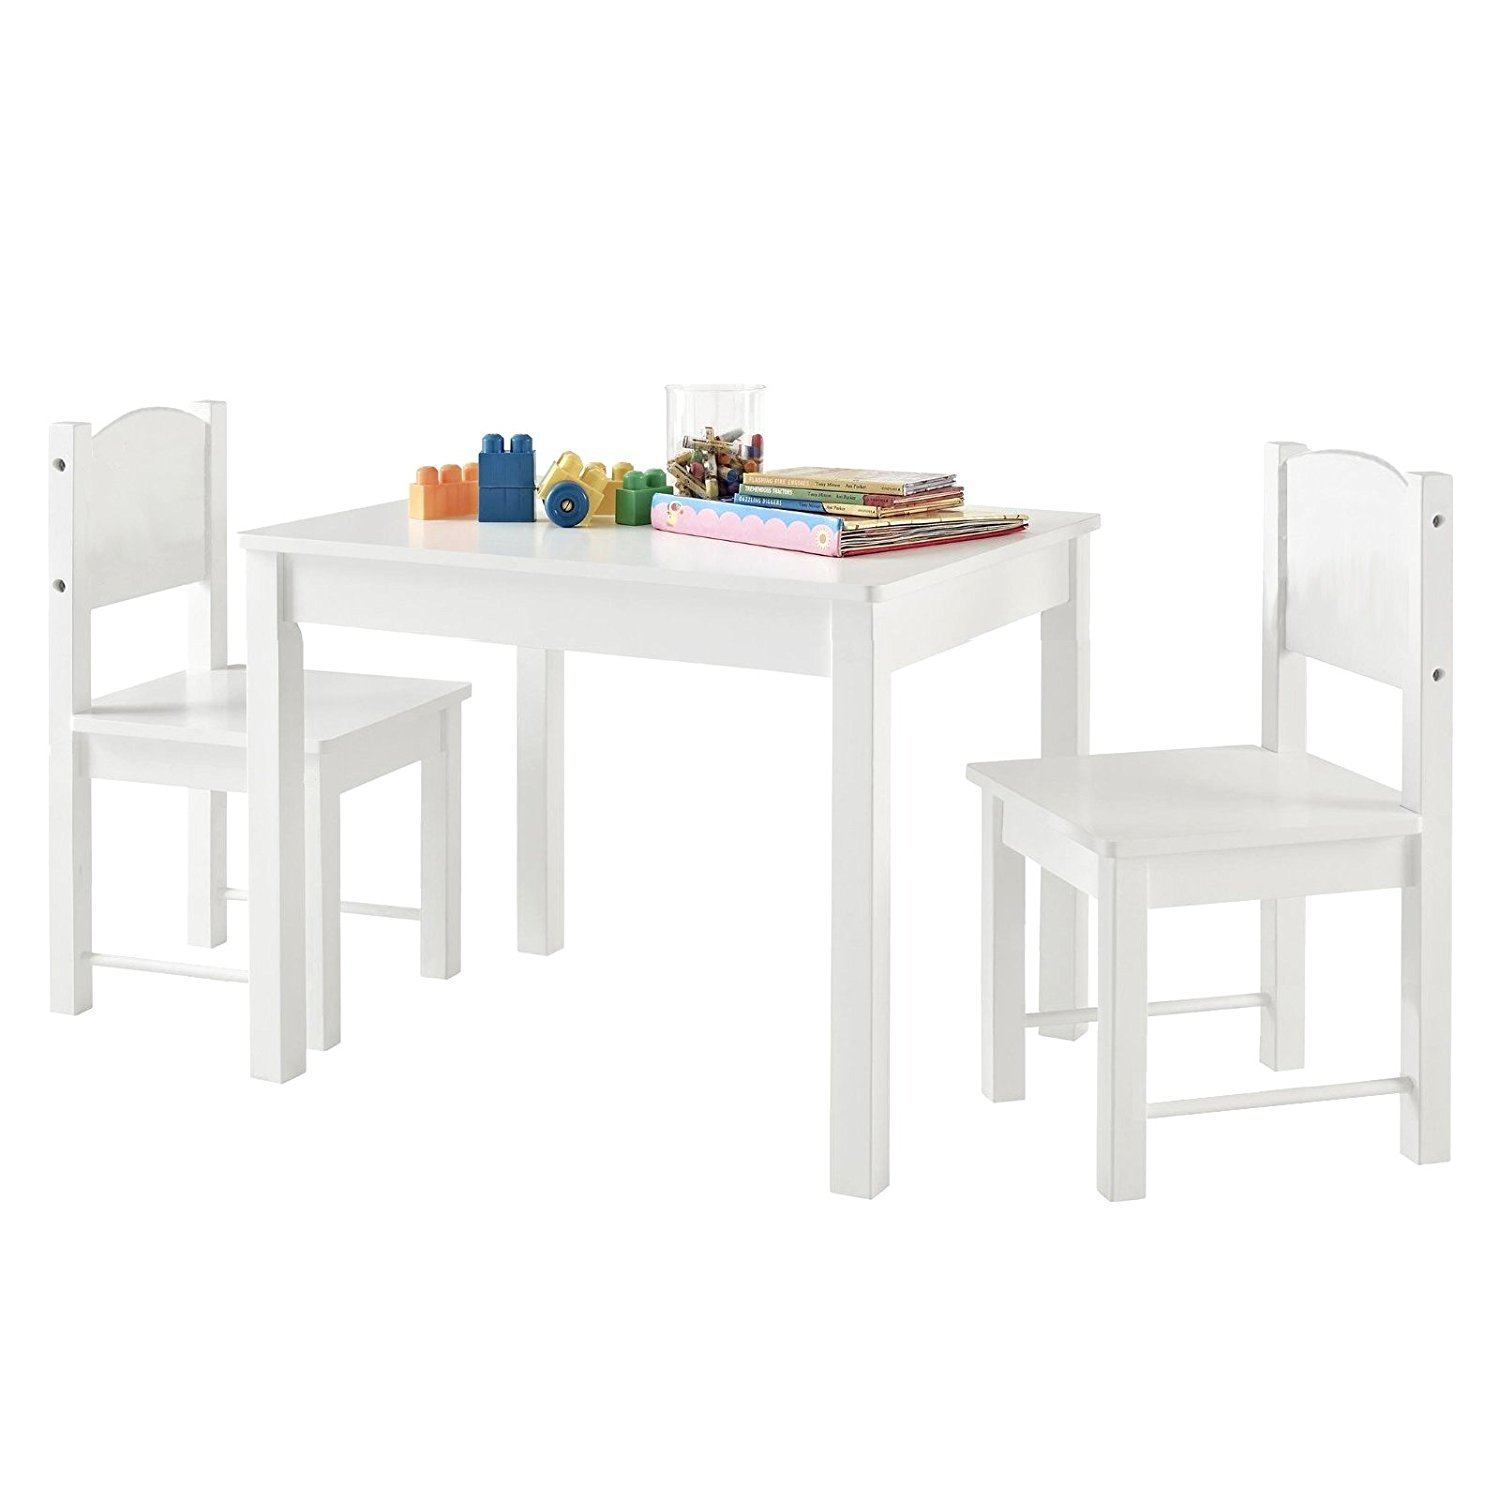 Kidkraft Heart Table And Chair Set Cheap Kids Table And Chairs Set Ikea Find Kids Table And Chairs